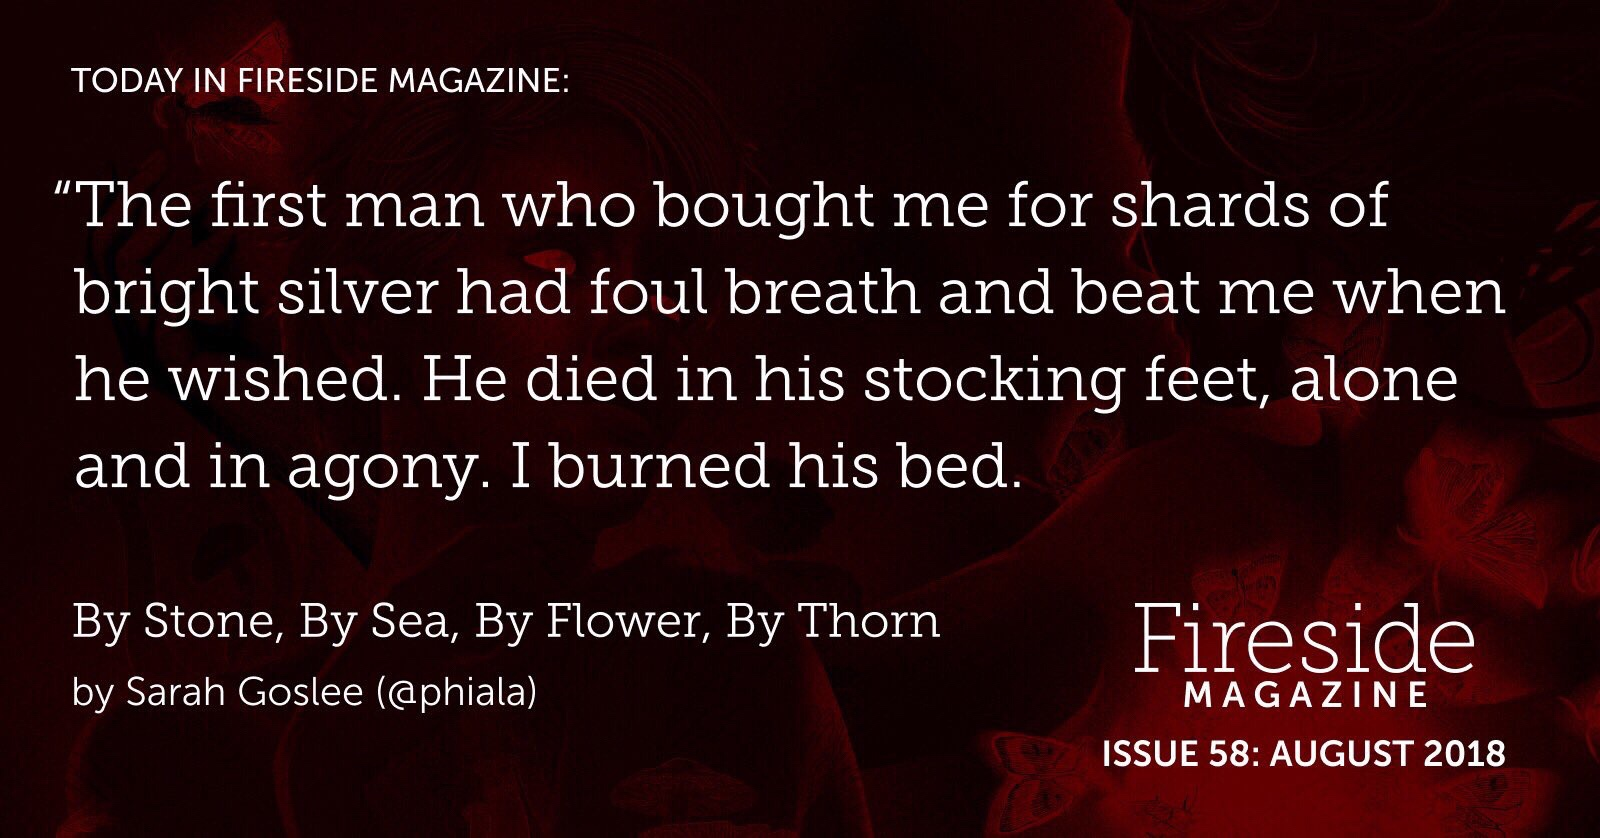 "Fireside logo and pull quote from story: ""The first man who bought me for shards of bright silver had foul breath and beat me when he wished. He died in his stocking feet, alone and in agony. I burned his bed."""